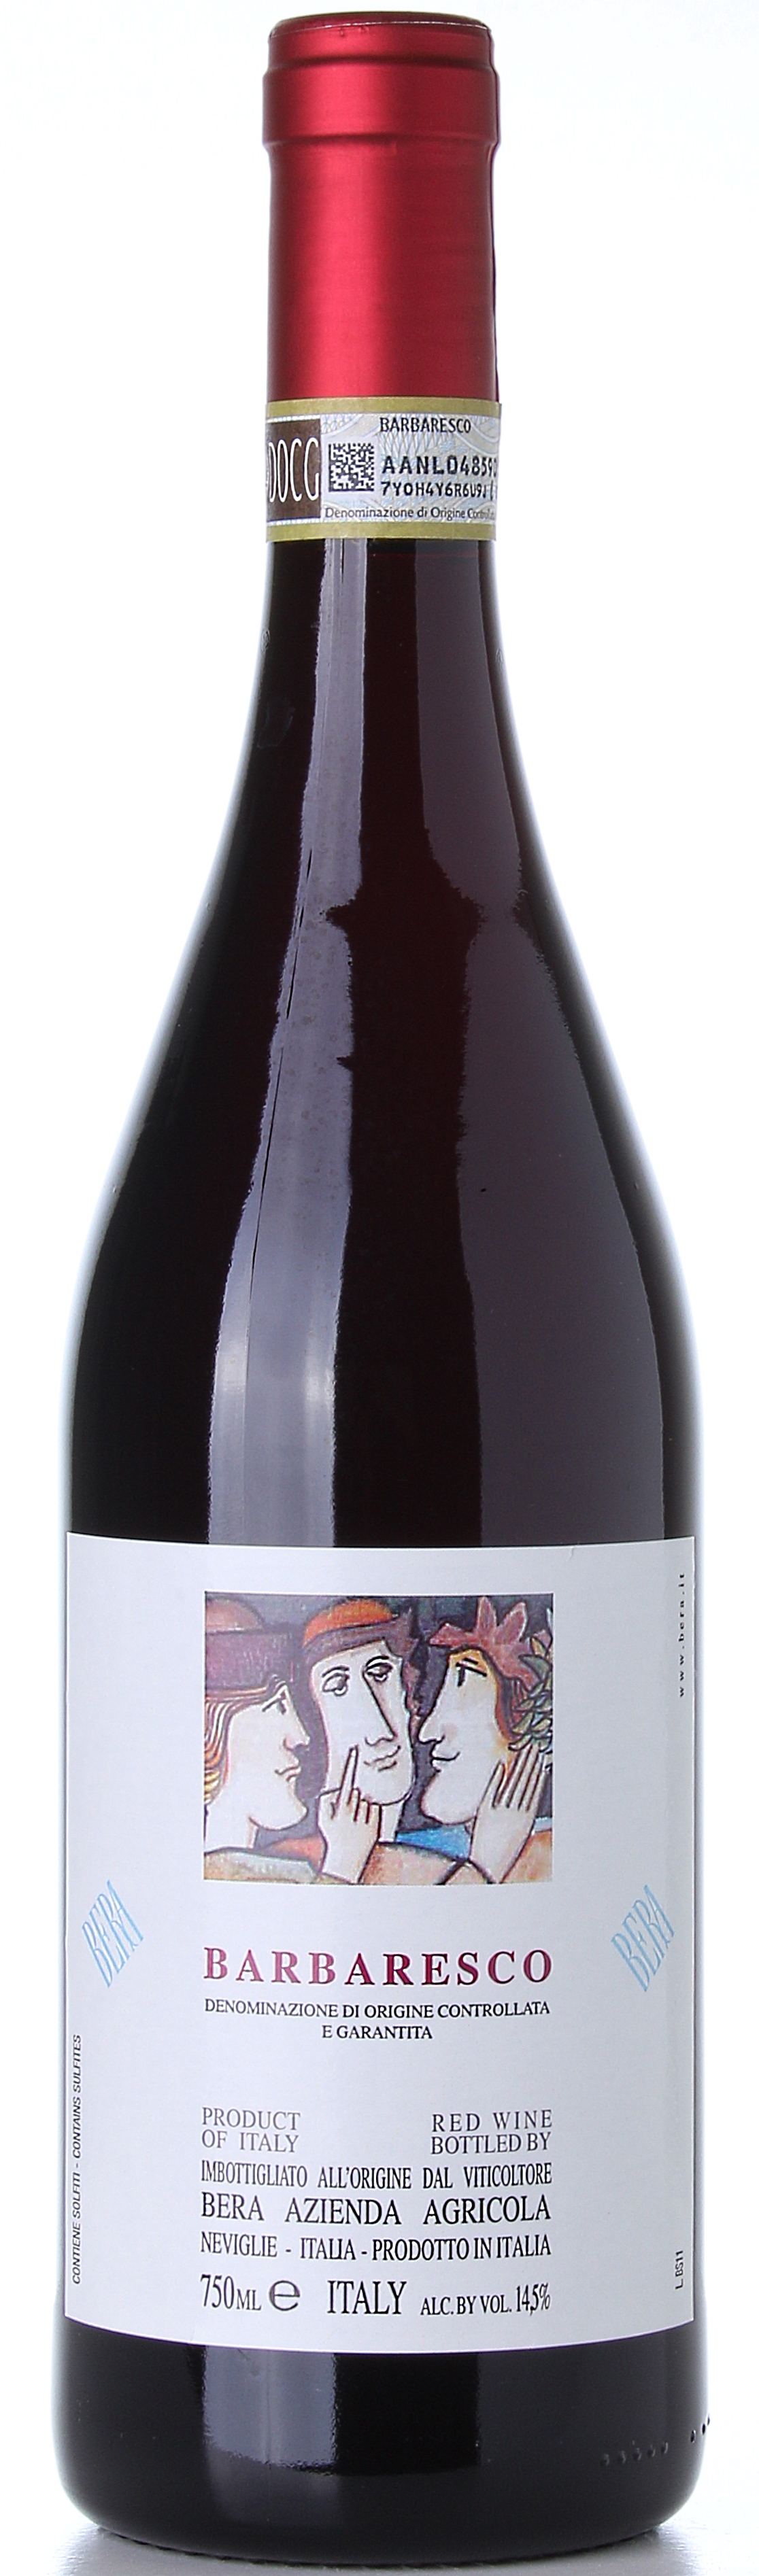 BERA BARBARESCO 2011